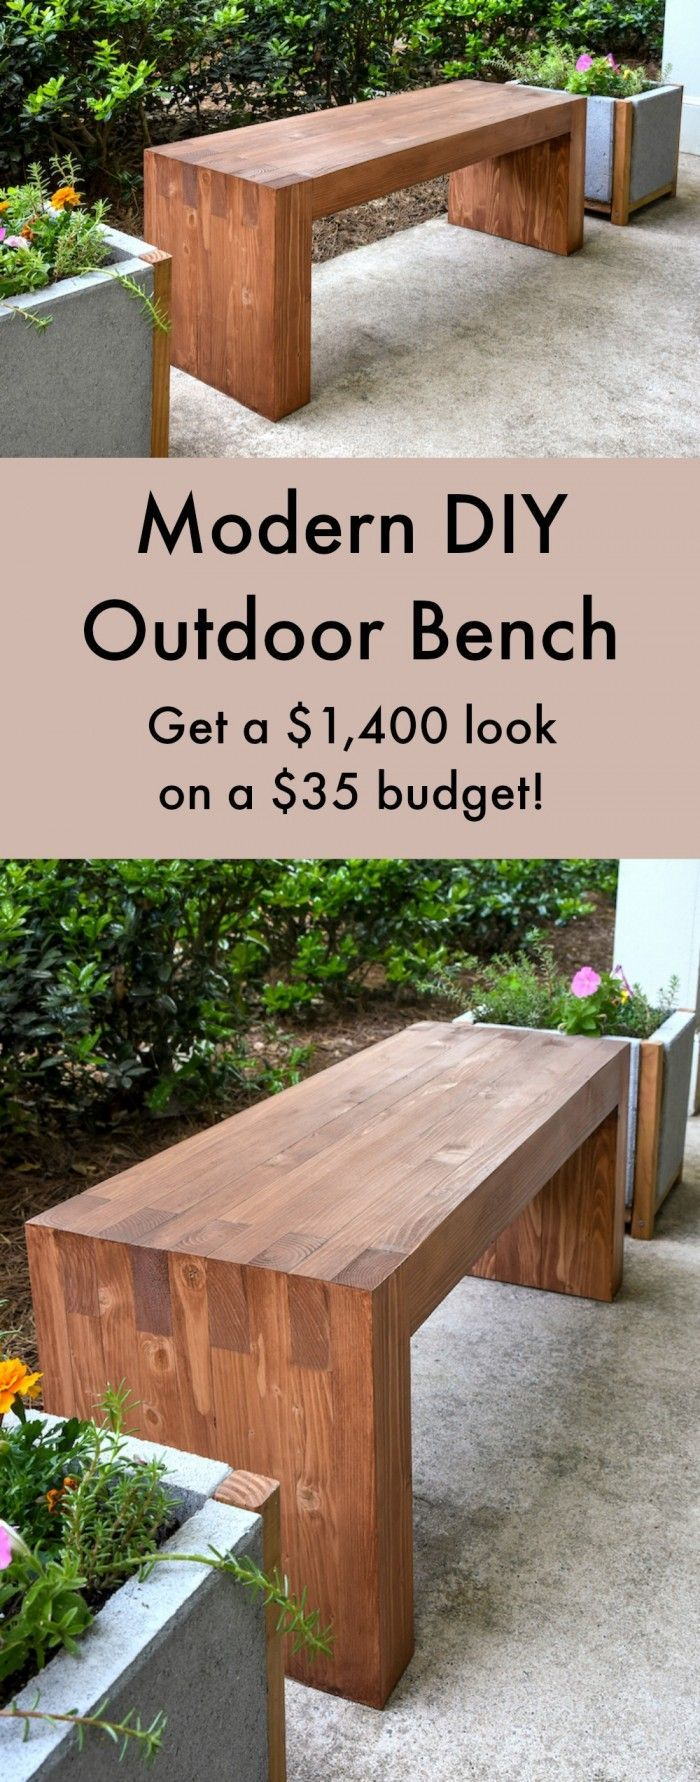 Desk for kids... This easy modern DIY outdoor bench was made with $35 of materials - and uses no nails or screws! Looks just like a Williams Sonoma one for $1,400. Wouldn't this look great in your garden?